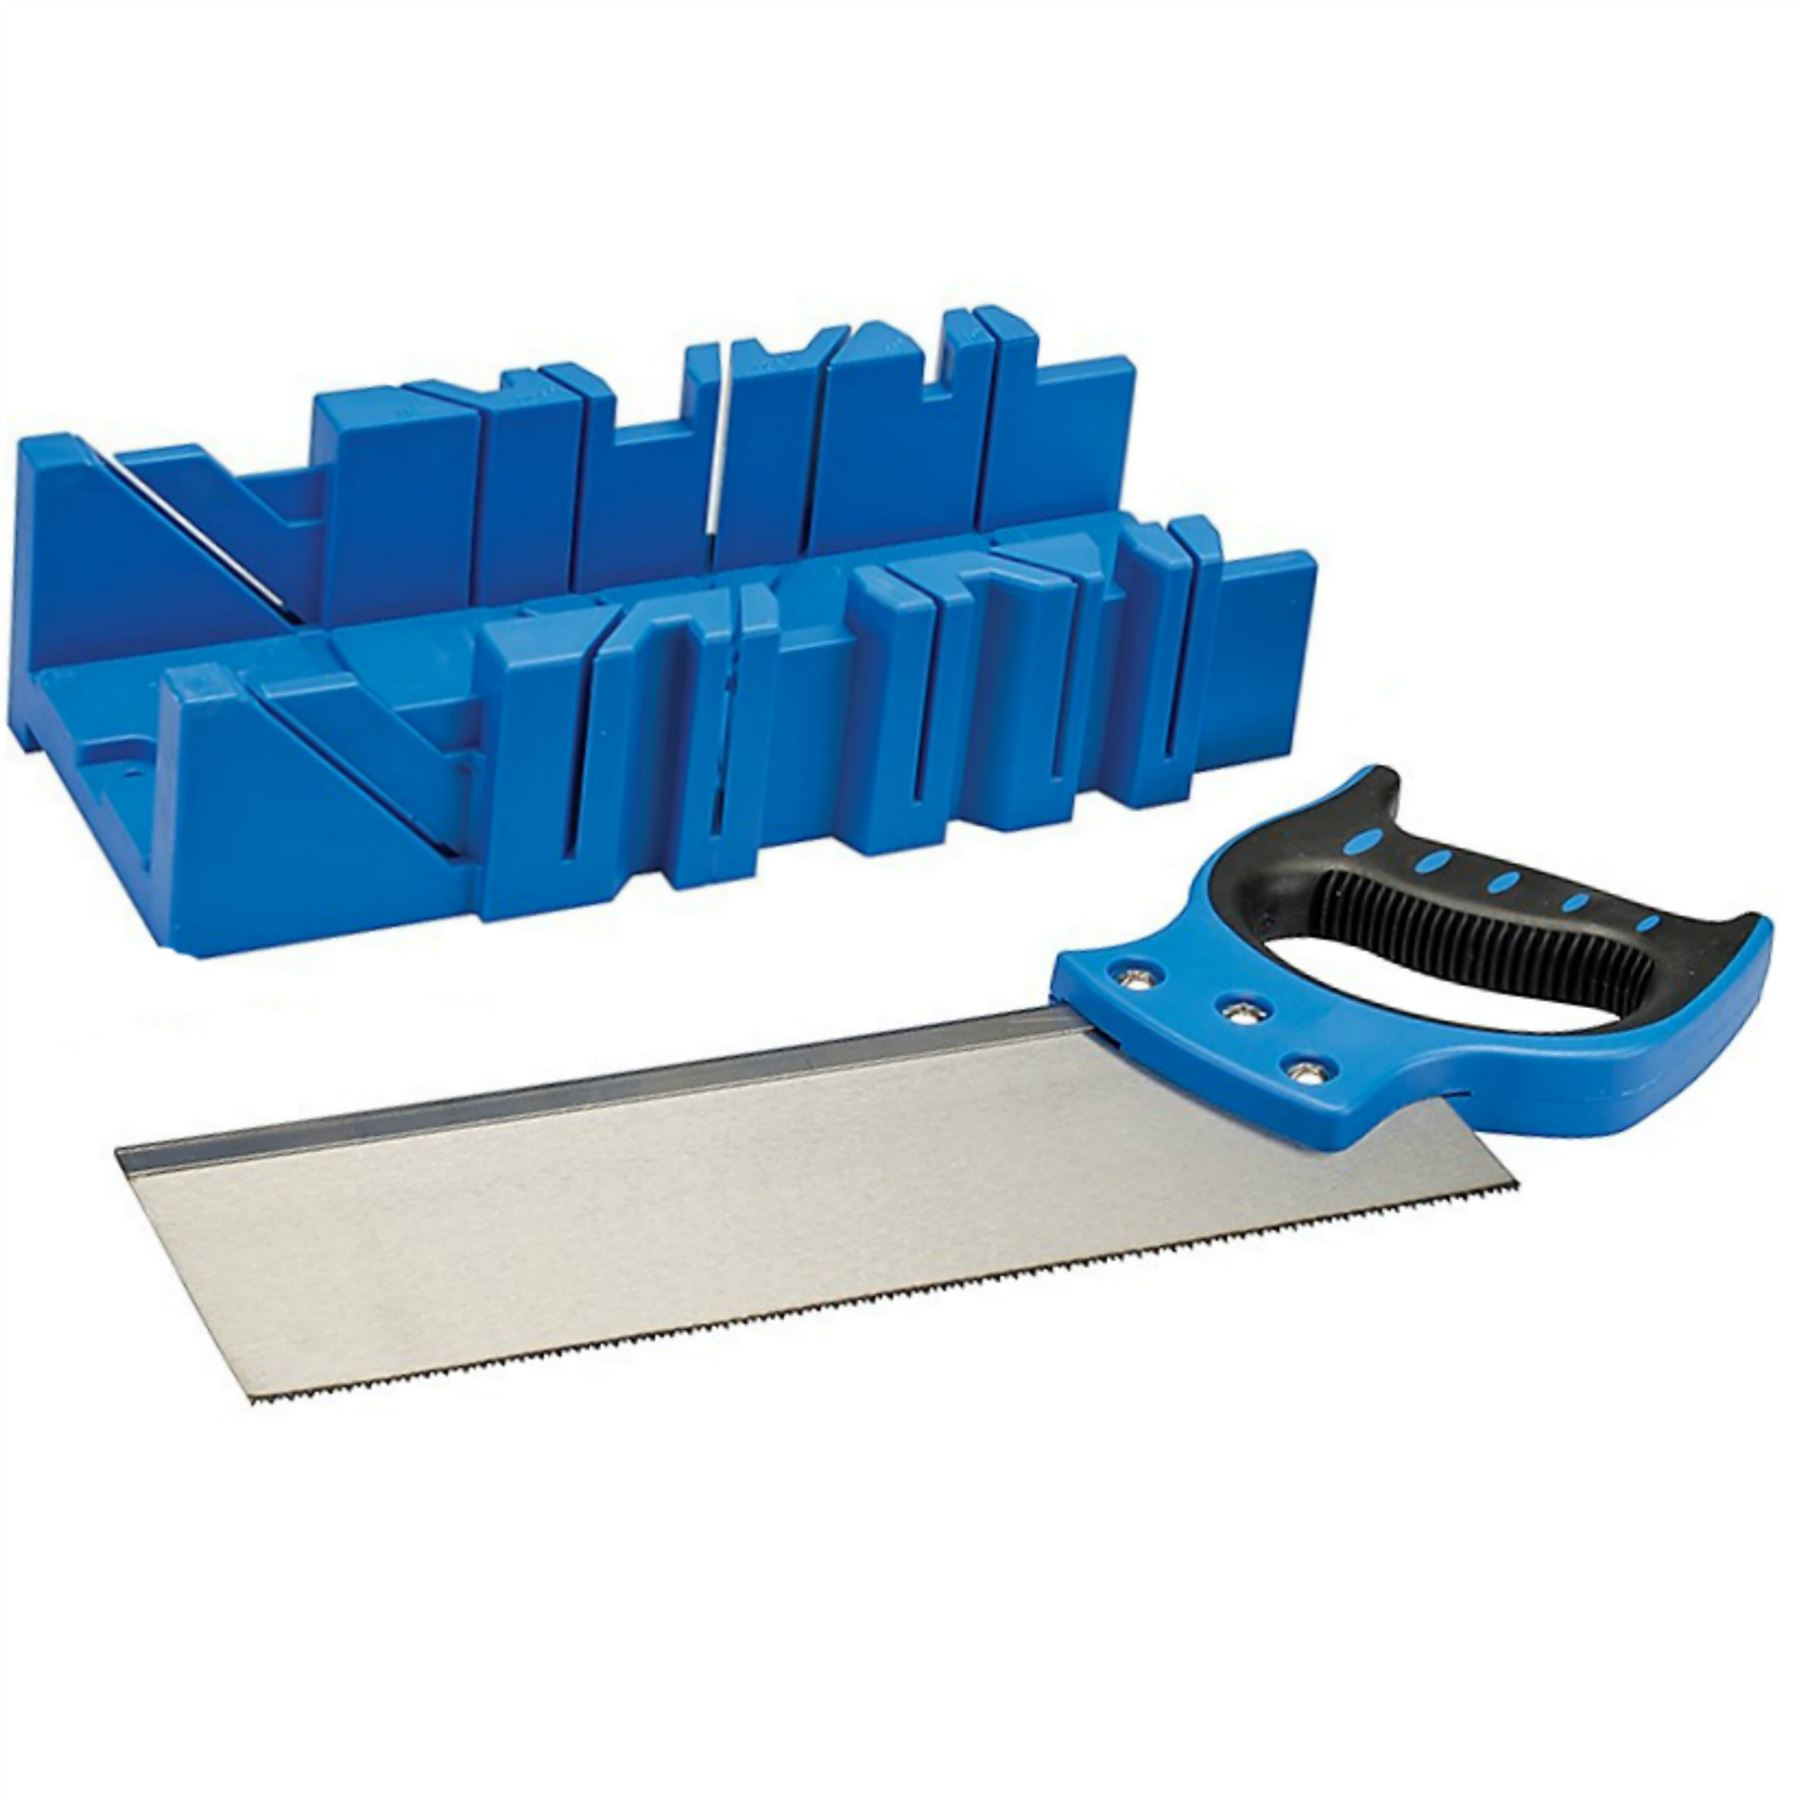 Silverline  300mm x 90mm Mitre Cutting Block Box  Tenon Saw  For Wood